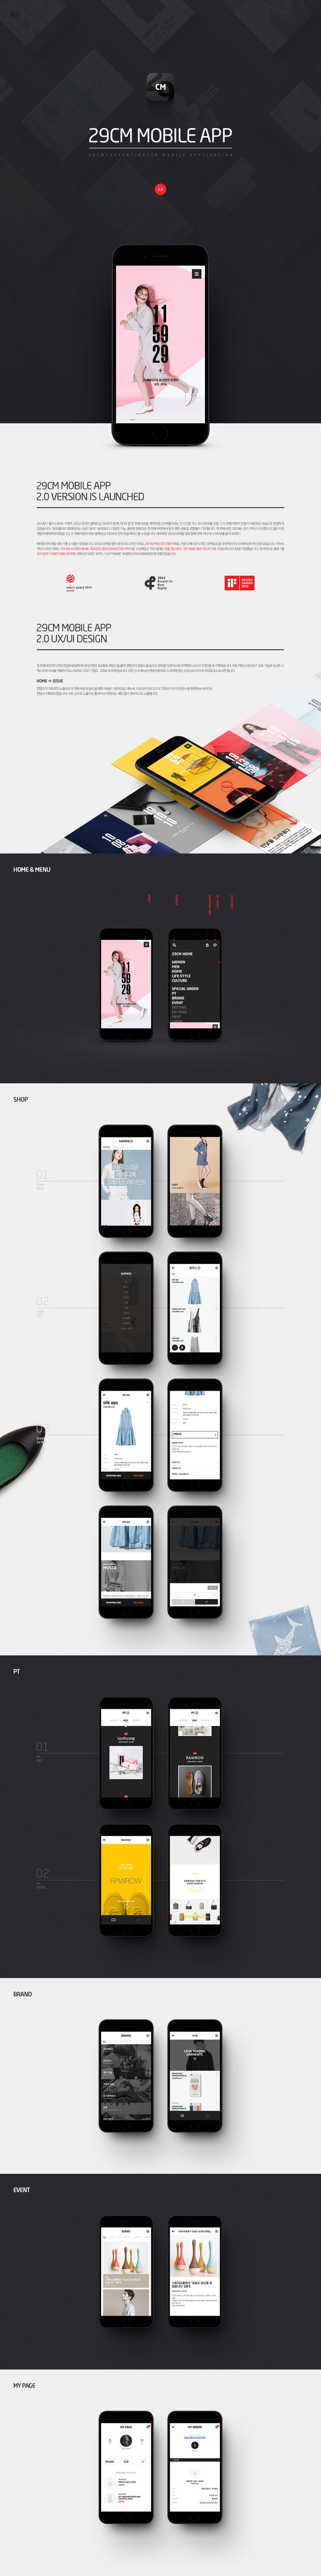 Select Shop '29CM' iOS/Android App 2.0 Ver on Behance